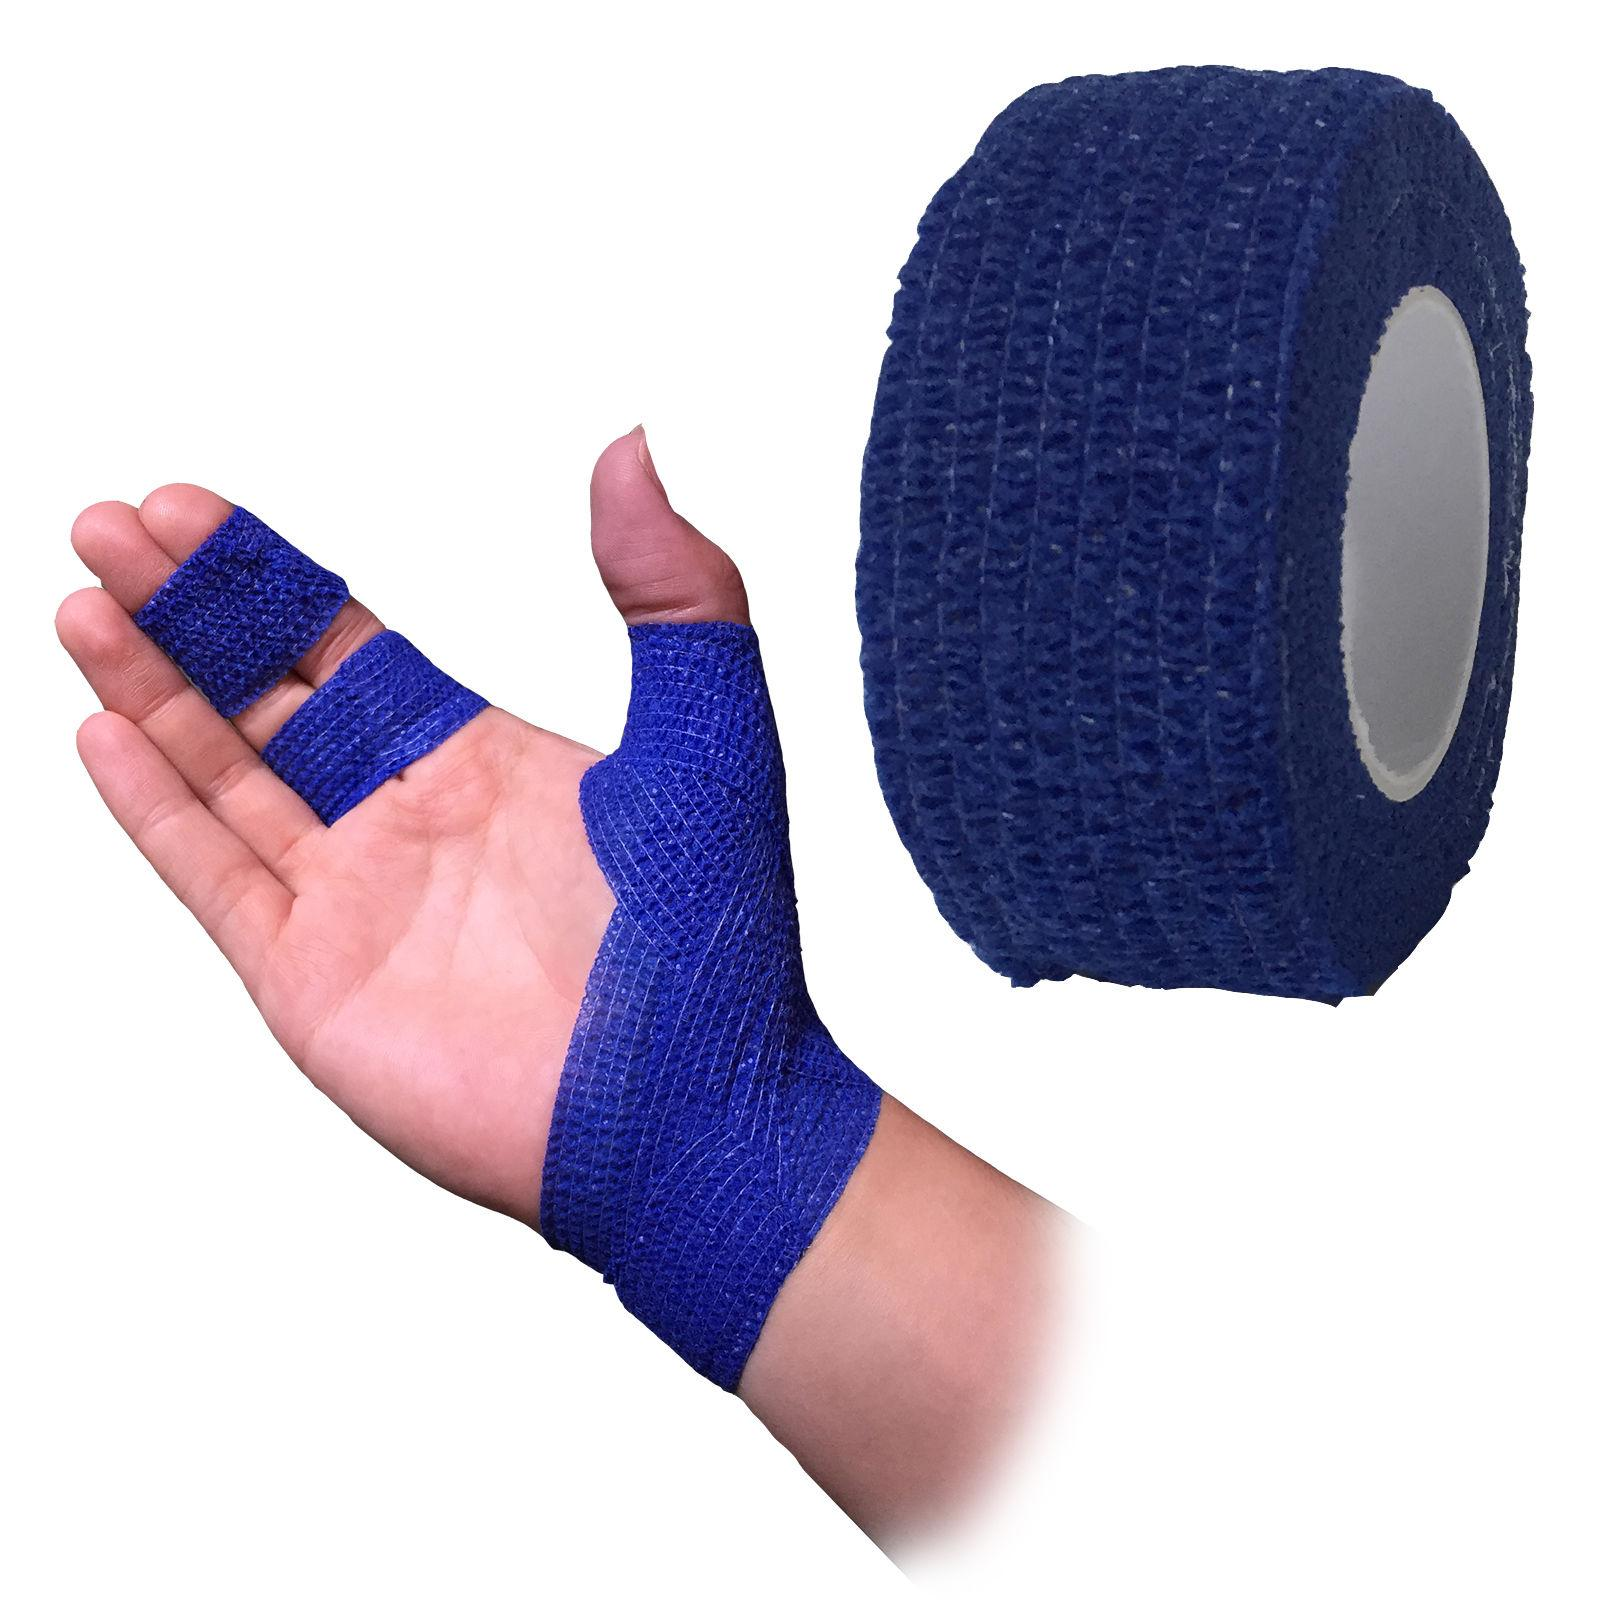 bandage coban cohesive blue 50mmx4 5m 1582b roll 17 bandages plaster and slings self. Black Bedroom Furniture Sets. Home Design Ideas